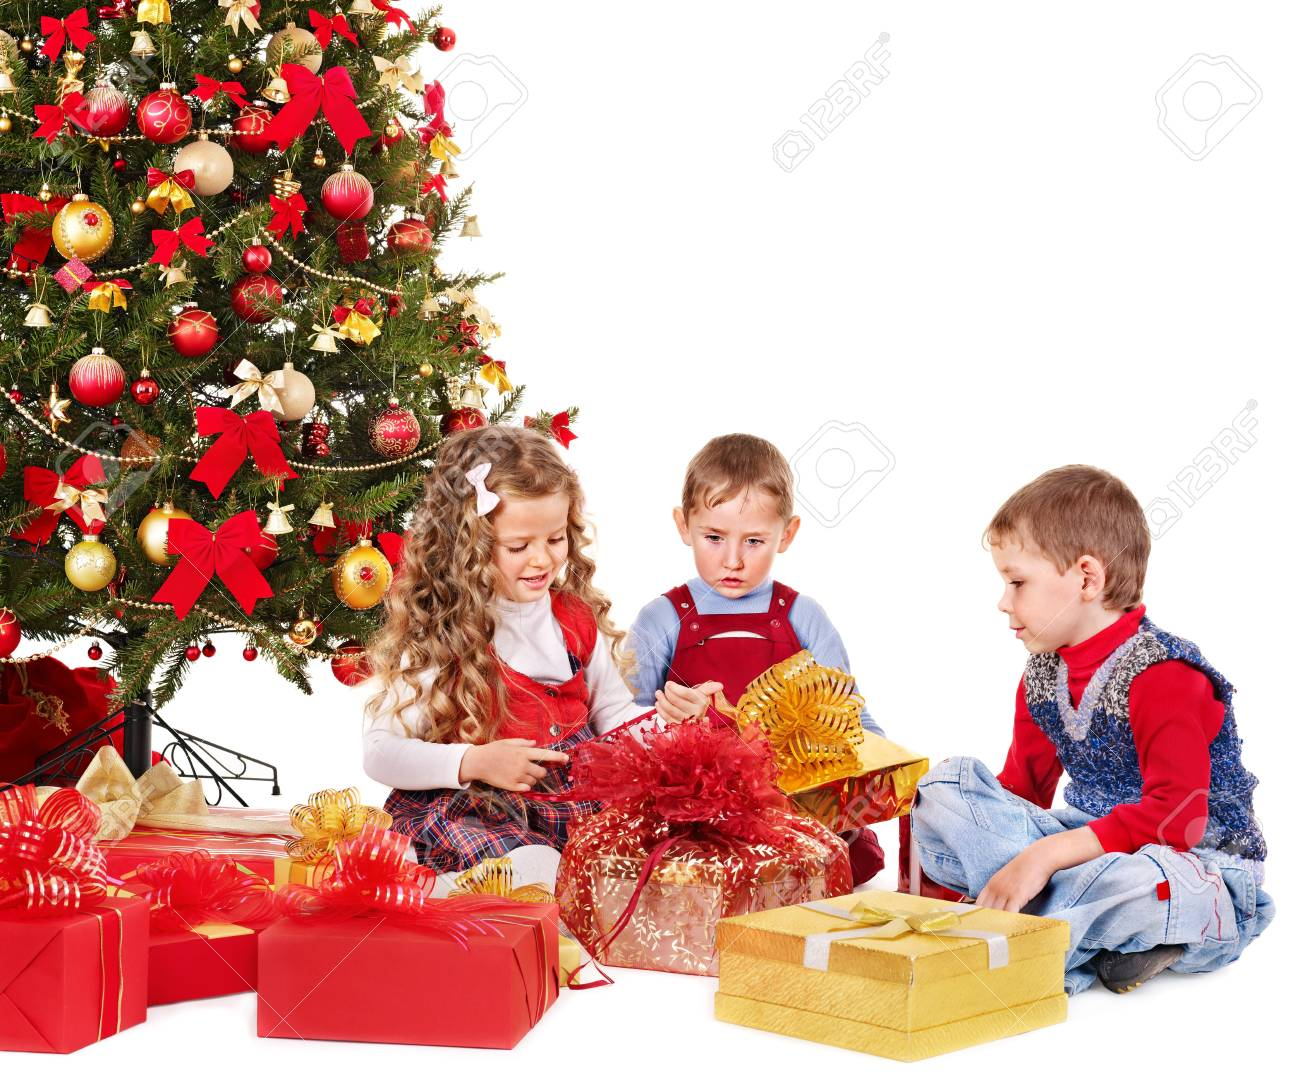 Children with gift box near Christmas tree. Isolated. Stock Photo - 11439382